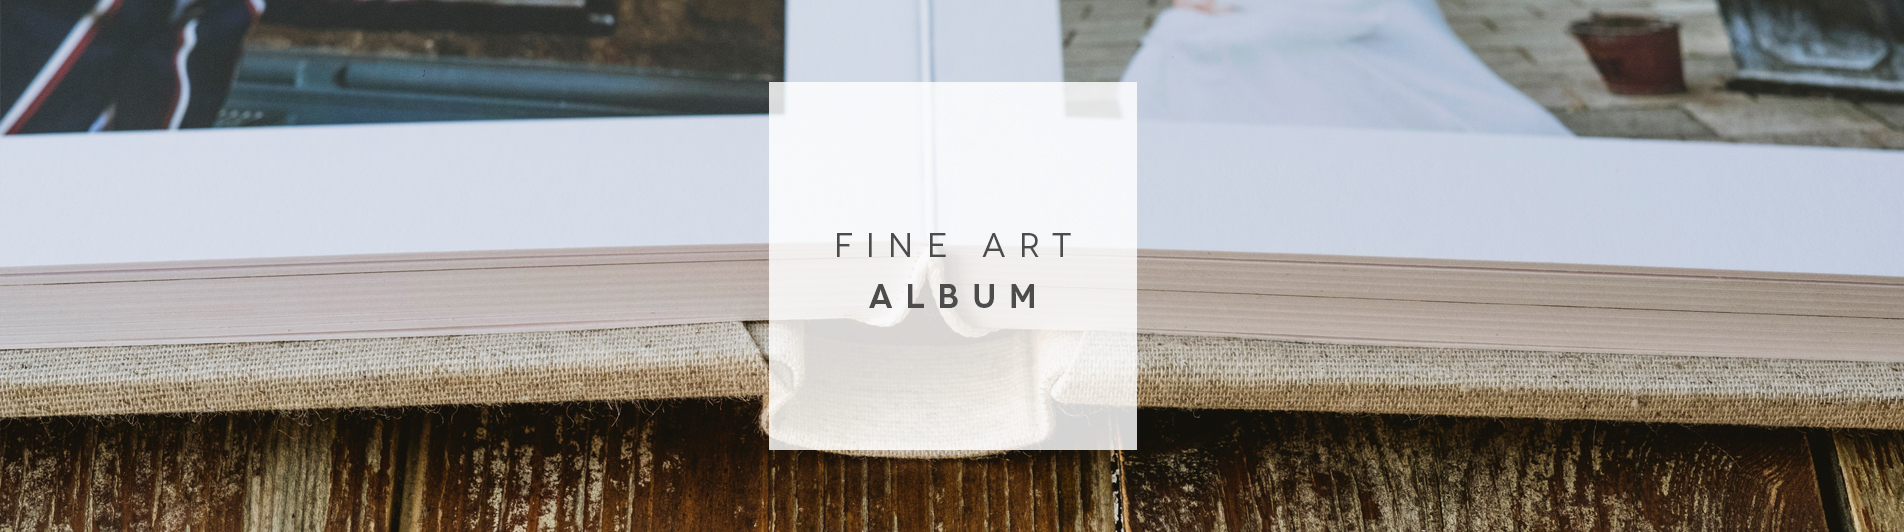 fine art album detail